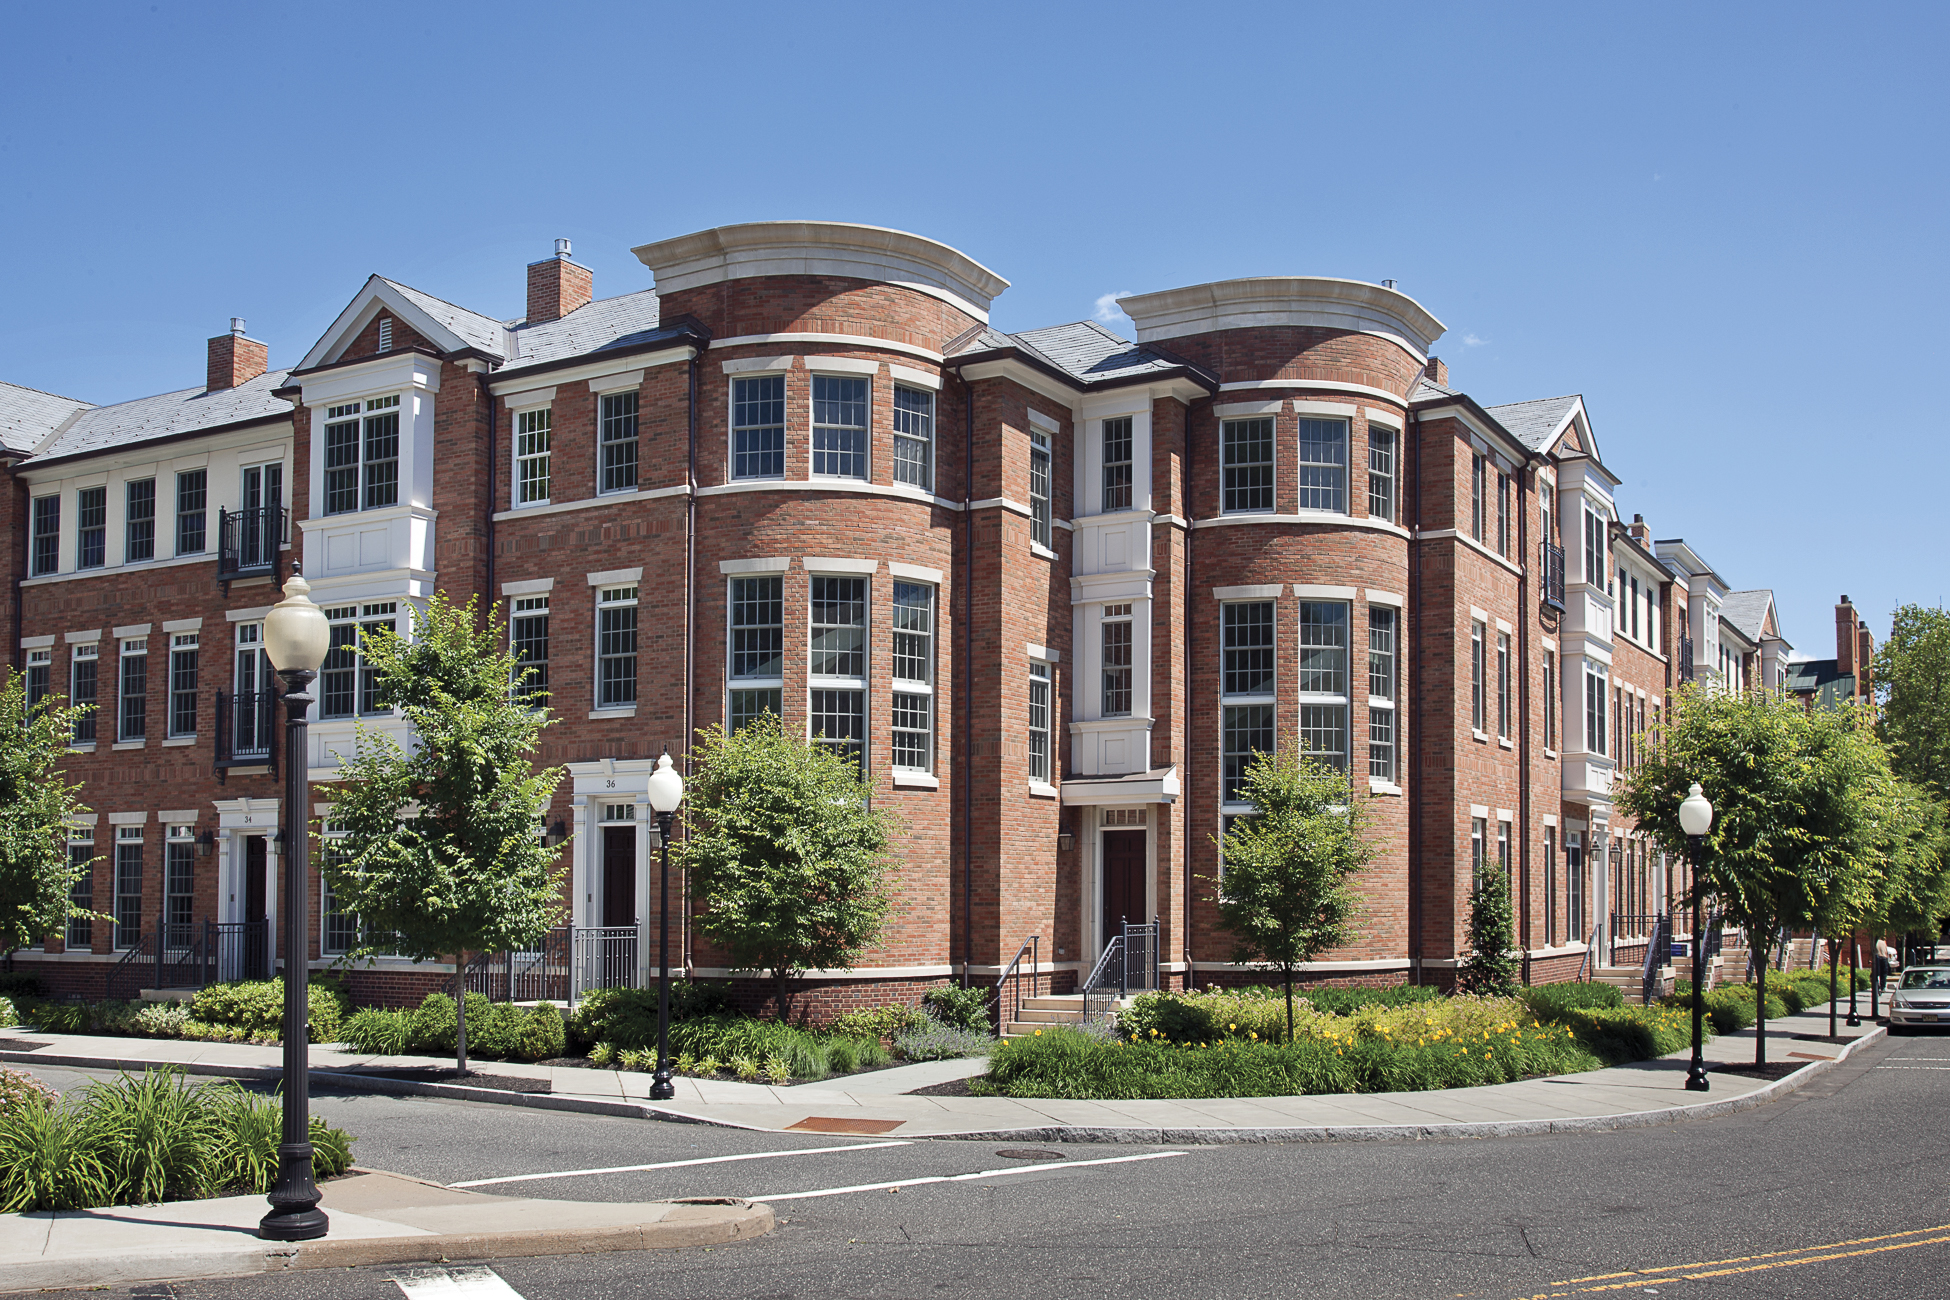 Casa Unifamiliar Adosada por un Venta en Luxurious Townhome in the Heart of Princeton 22 Paul Robeson Place Princeton, Nueva Jersey 08540 Estados Unidos